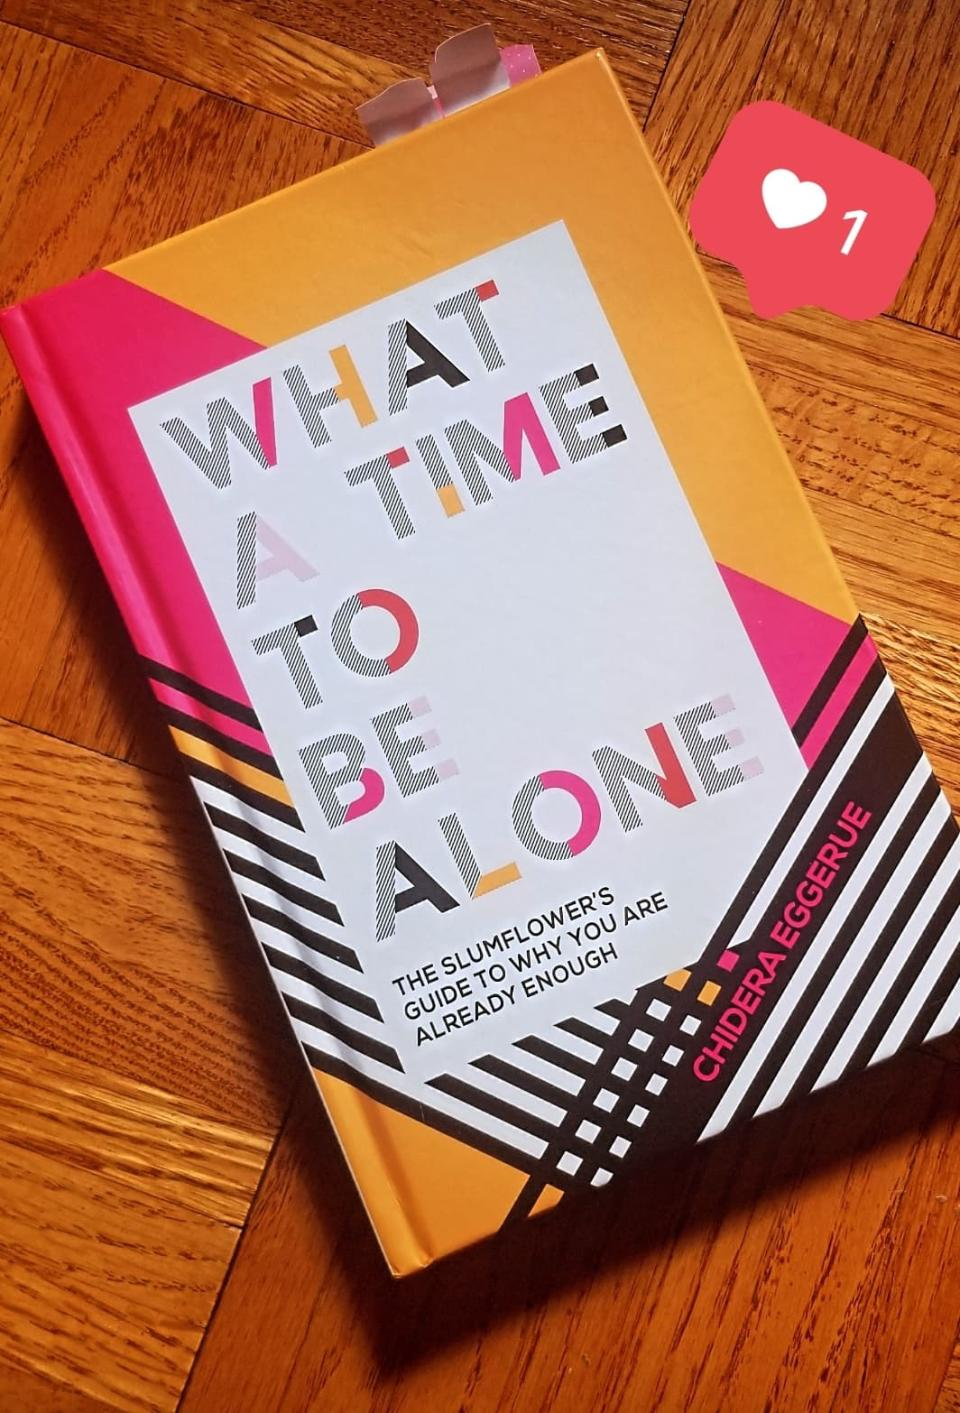 What a Time to Be Alone: The Slumflower's Guide to Why You Are Already Enough by Chidera Eggerue. Image via Sarah Rohoman.